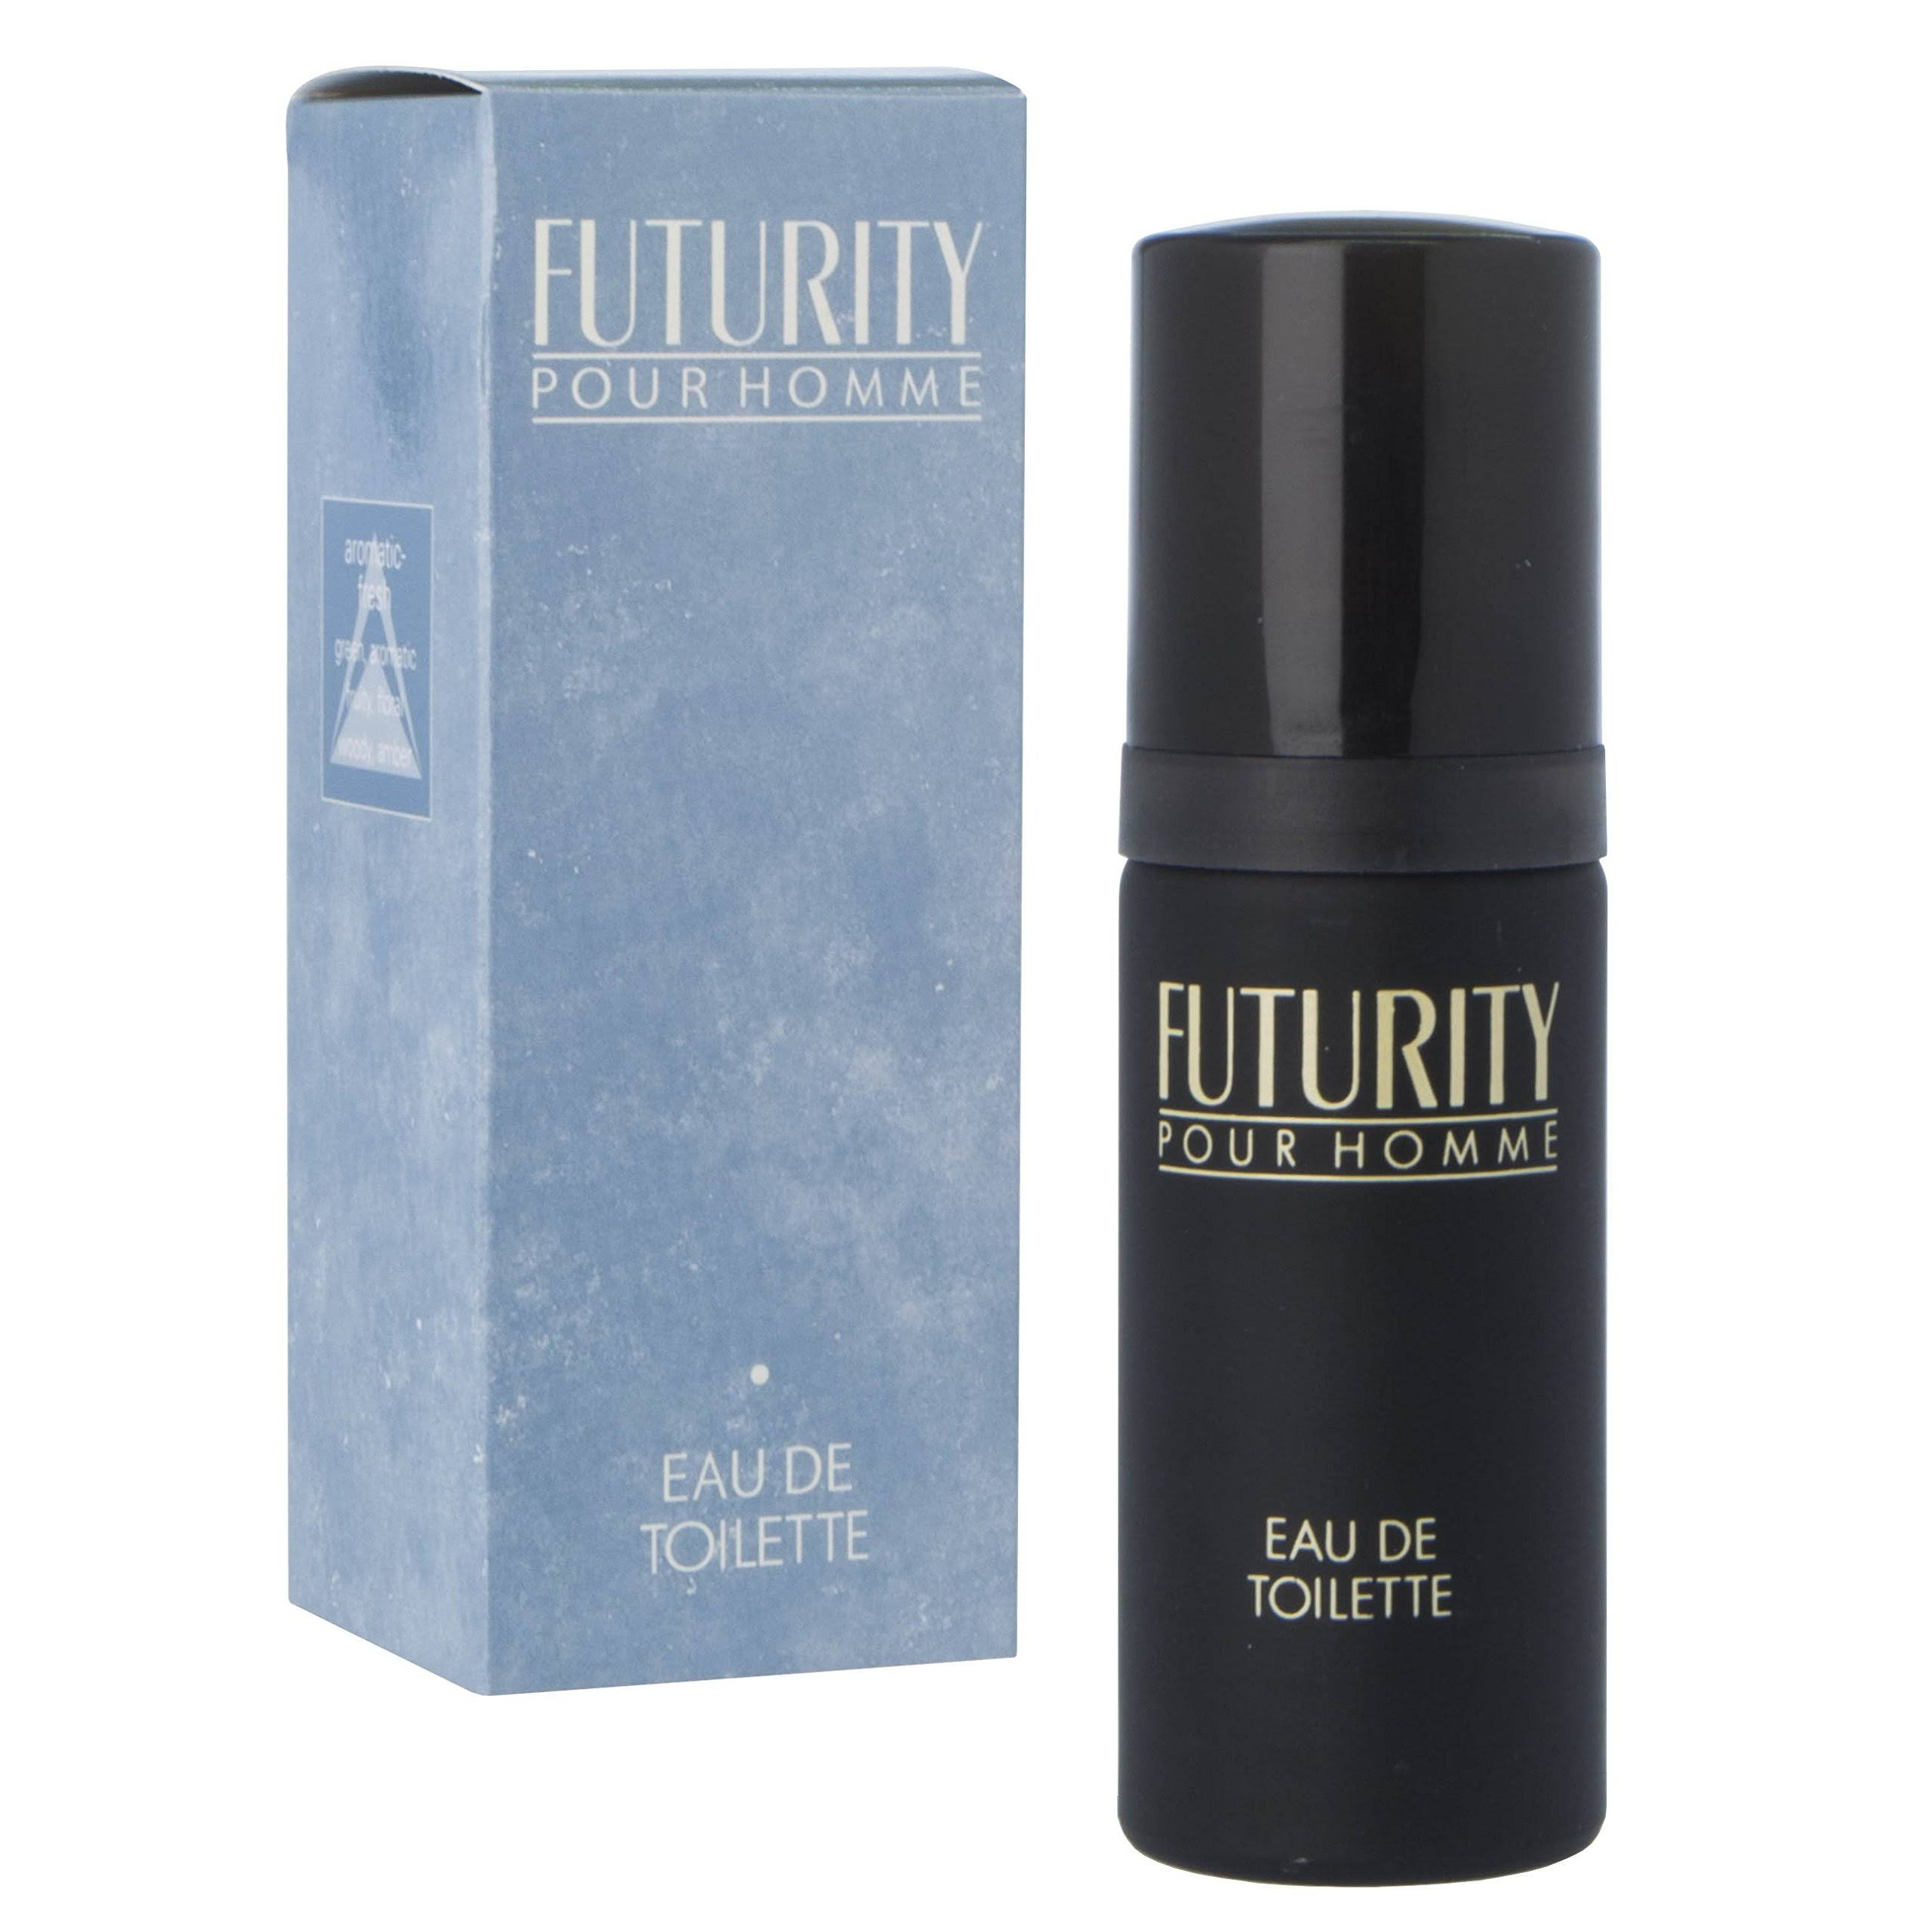 Futurity Pour Homme Eau De Toilette for Men - 50ml by Milton-Lloyd